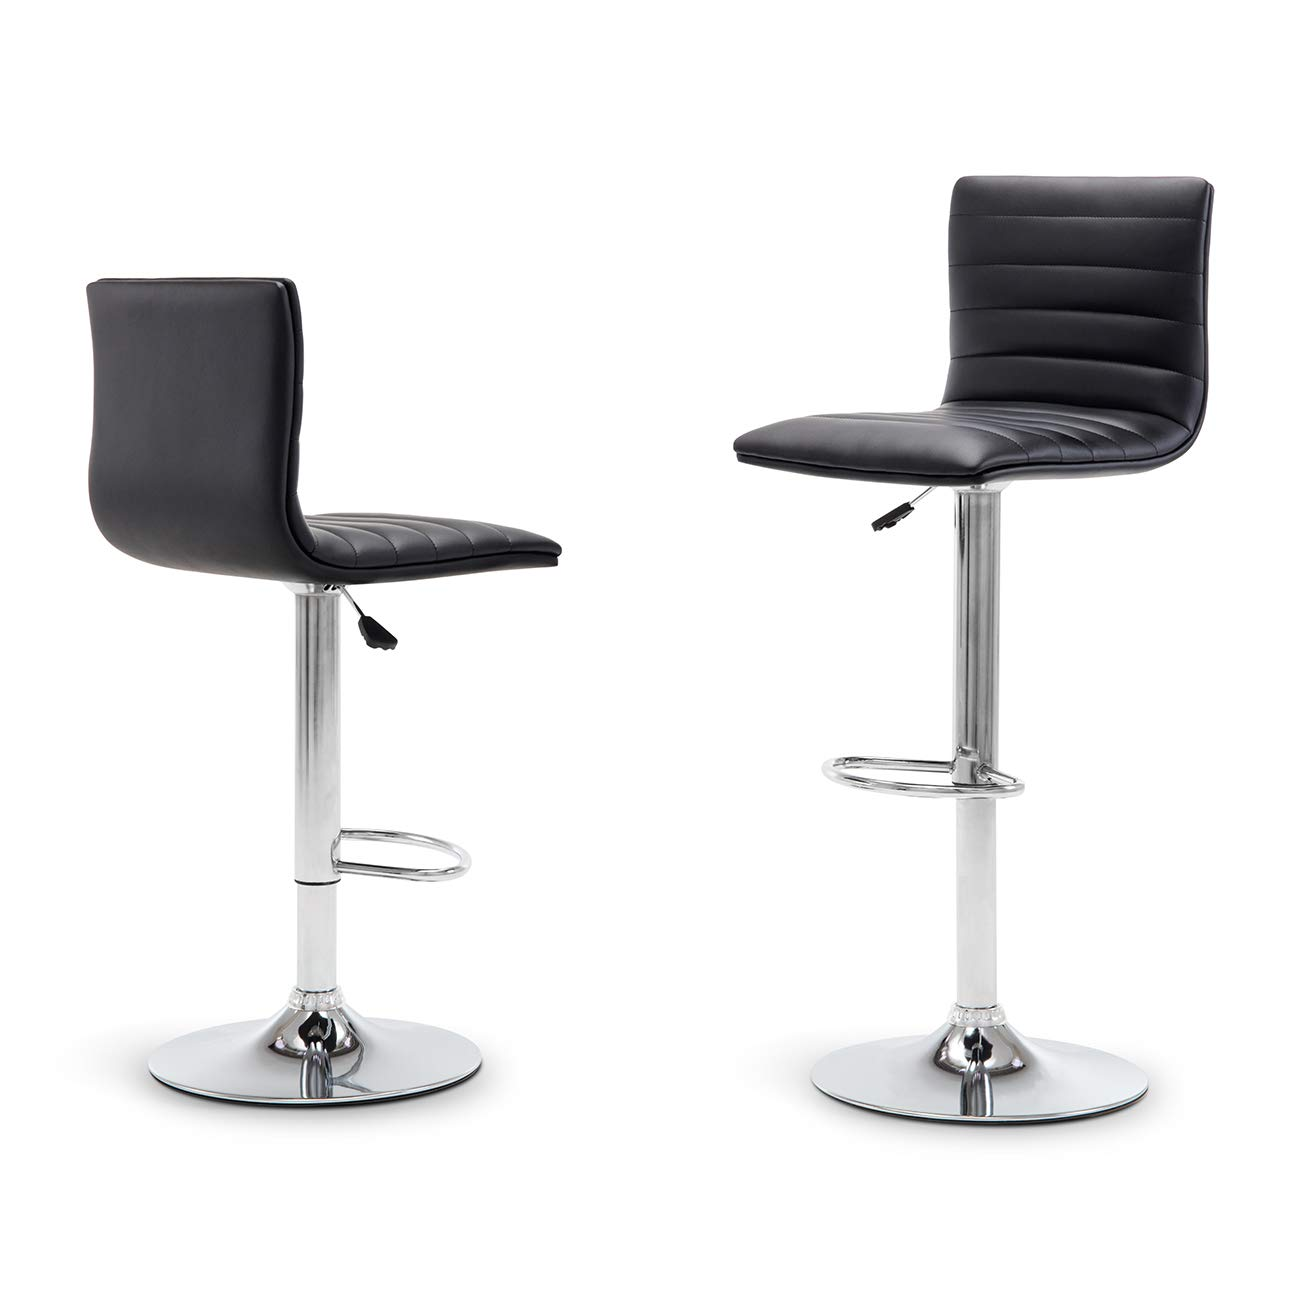 Clear And Distinctive Fast Deliver The Bar Chair. The Back Of A Chair Stool Rotating Lifting Chair Hairdressing Chair